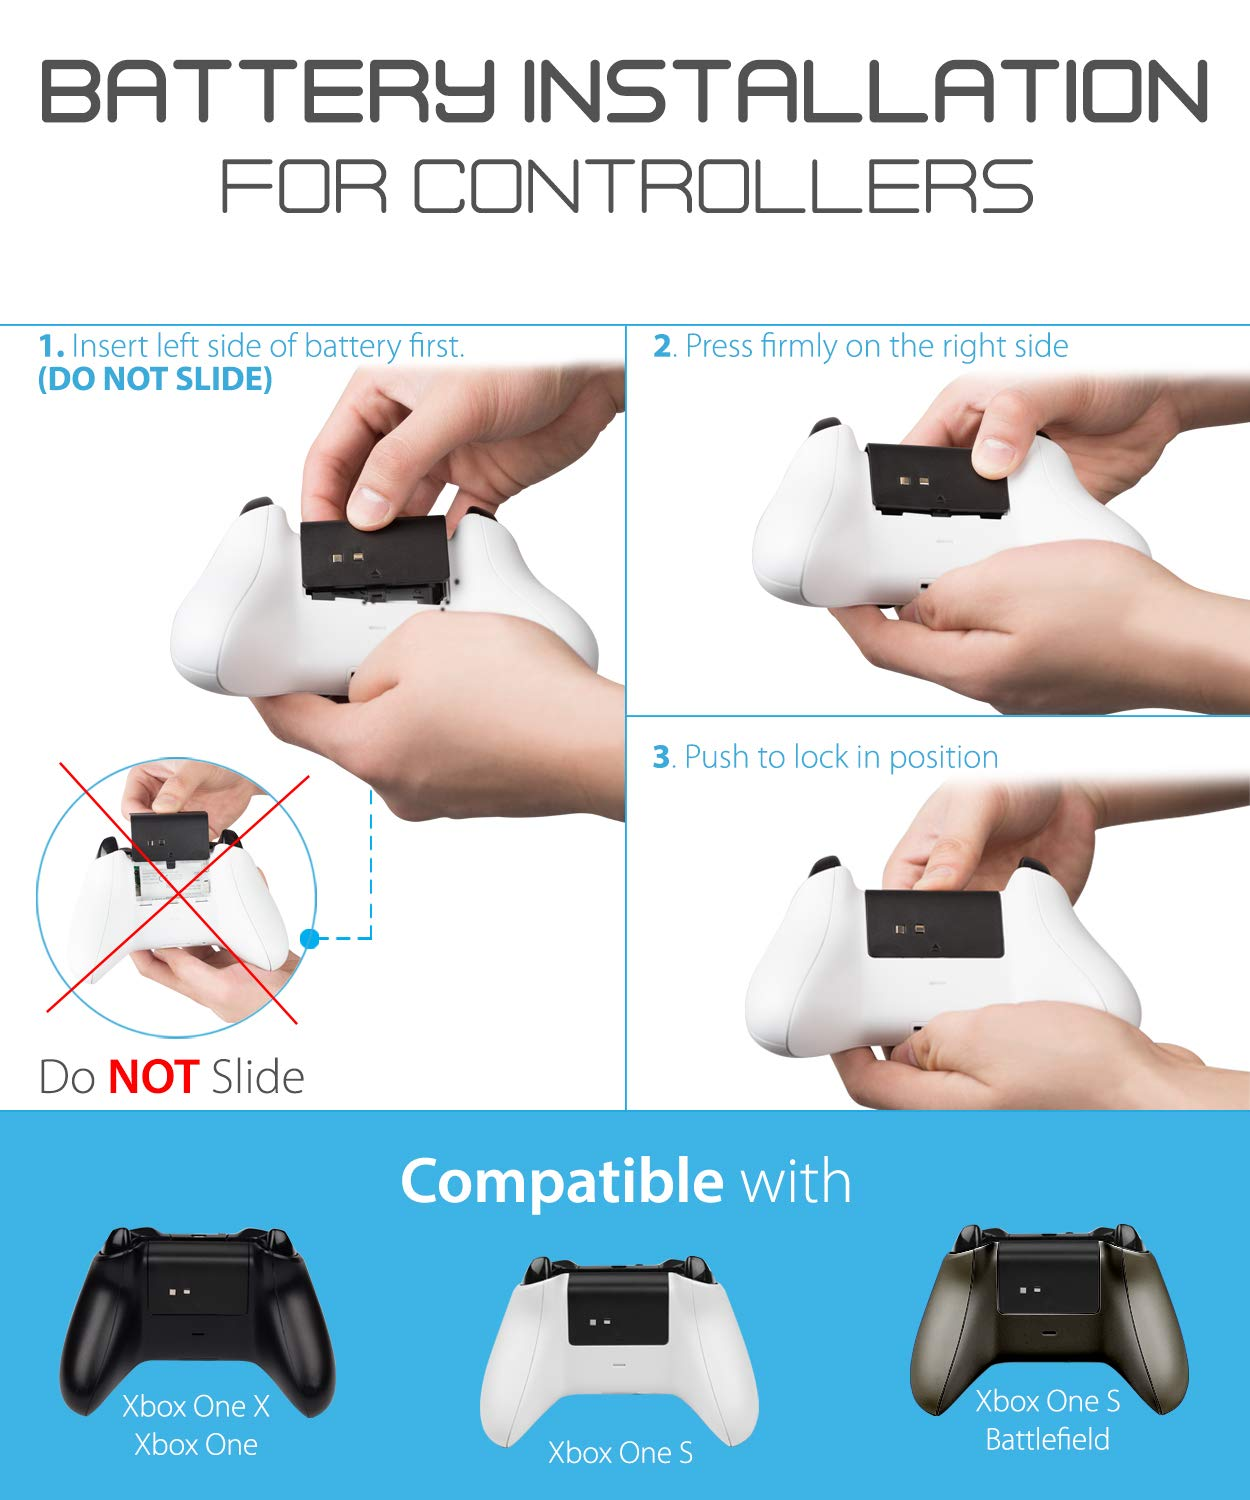 Fosmon Xbox One X S Controller Charger Dual Once Attached They Look Part Of The And Not An Slot High Speed Docking Charging Station With 2 1000mah Rechargeable Battery Packs